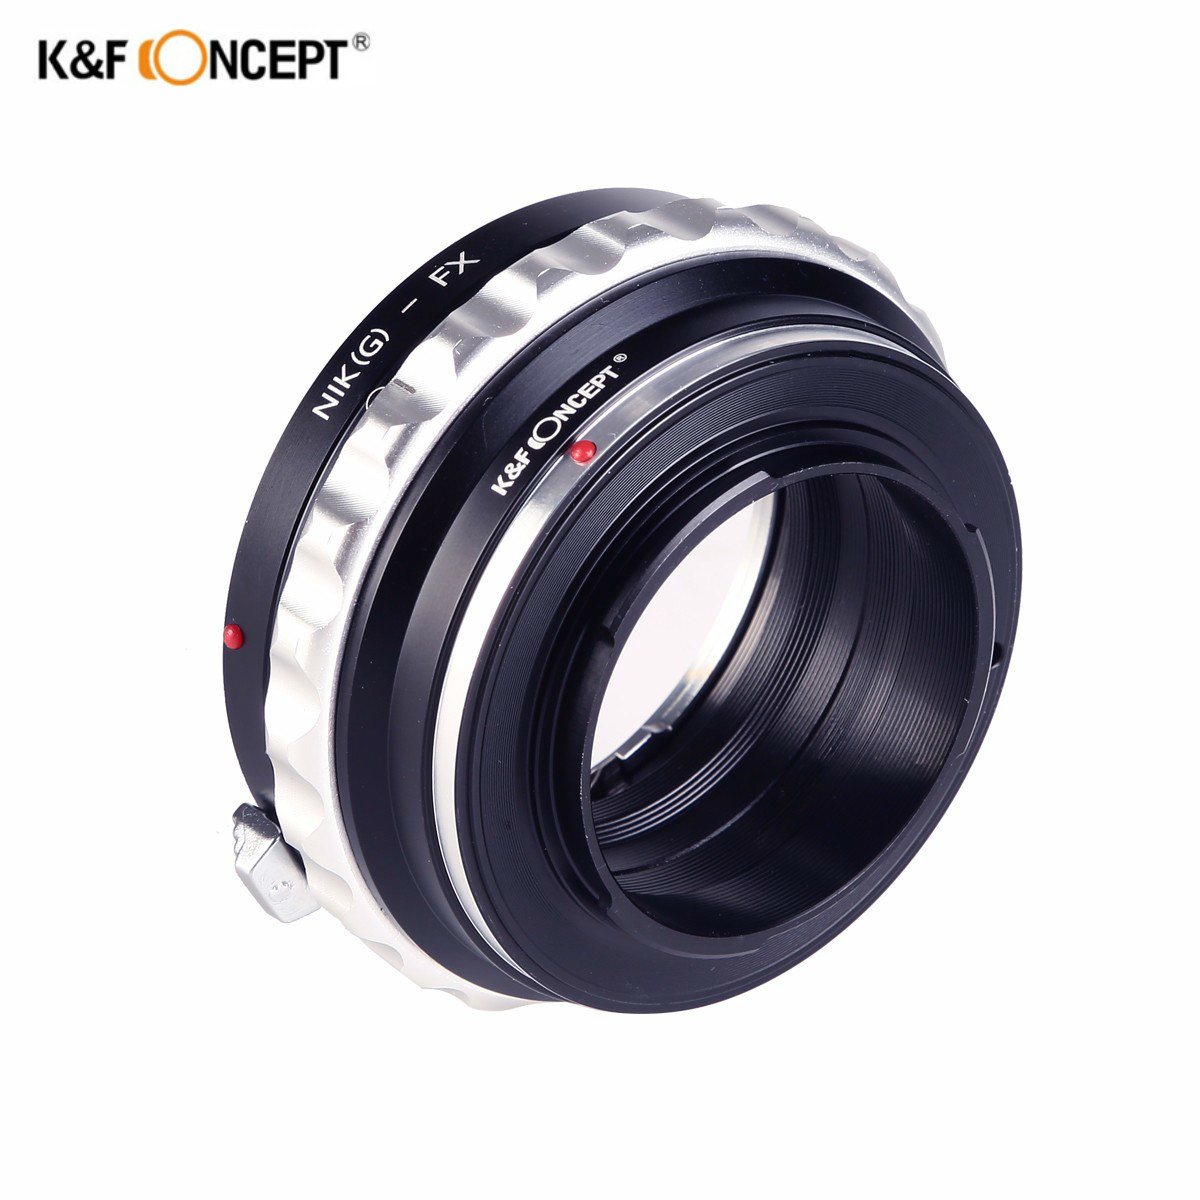 K&F CONCEPT Lens Adapter Mount Ring for AI(G)-FX AI lens to fuji FX X X-Pro1 E1 XPro1 Camera Body Free Shipping ai